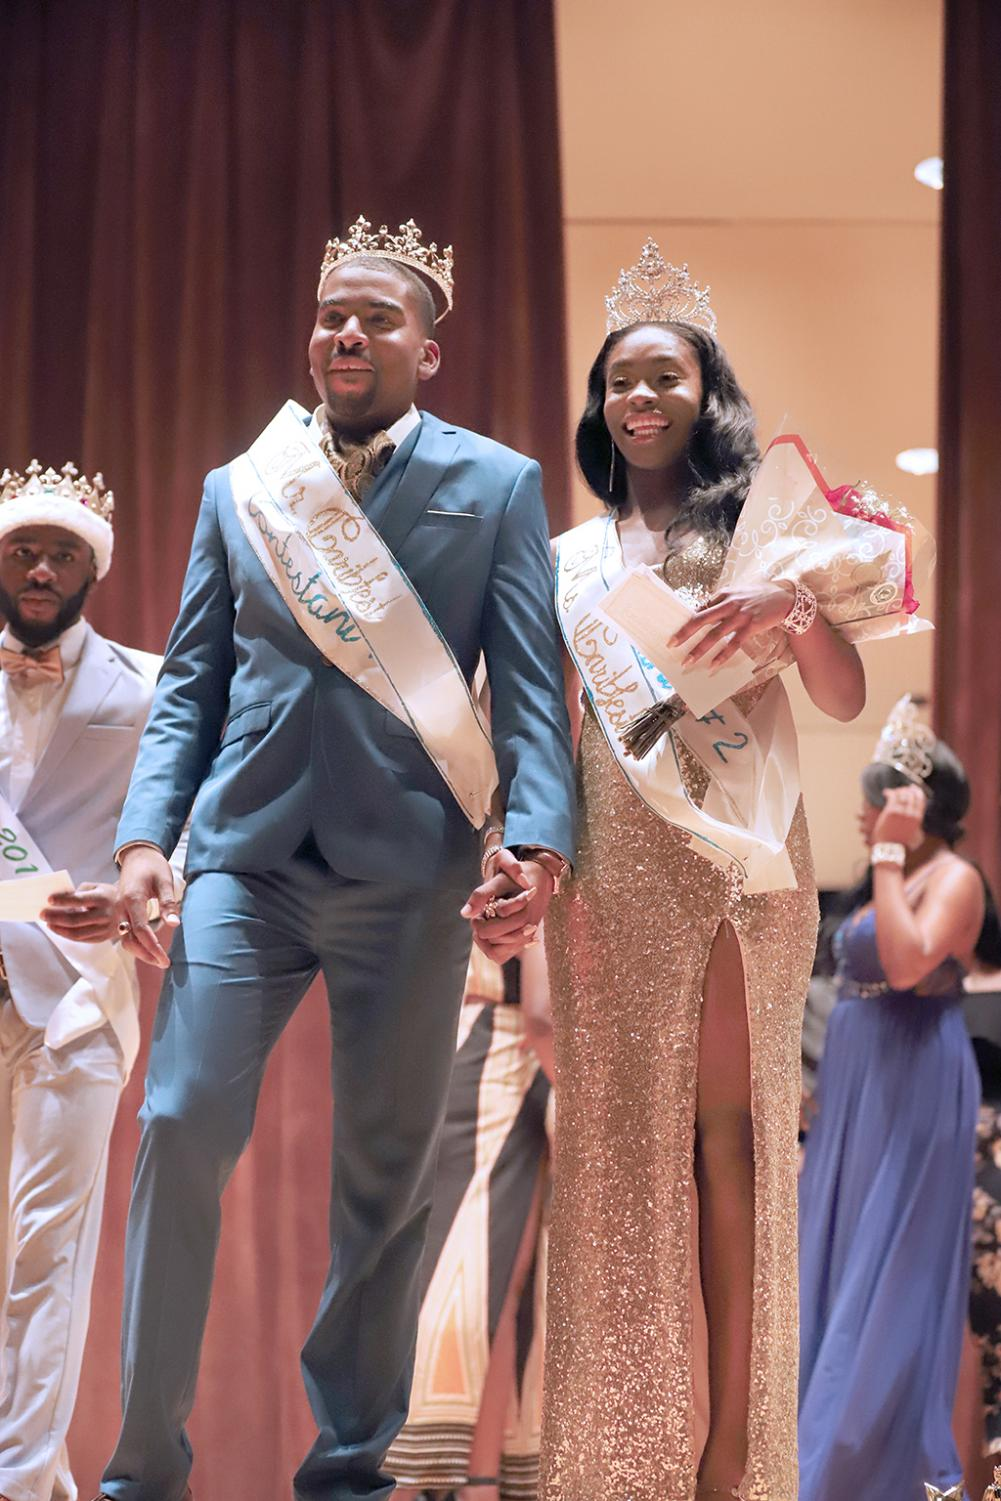 Steven Williams and Lydie Joseph are crowned the new king and queen of Caribfest 2018. Photo by Demian Ponce.